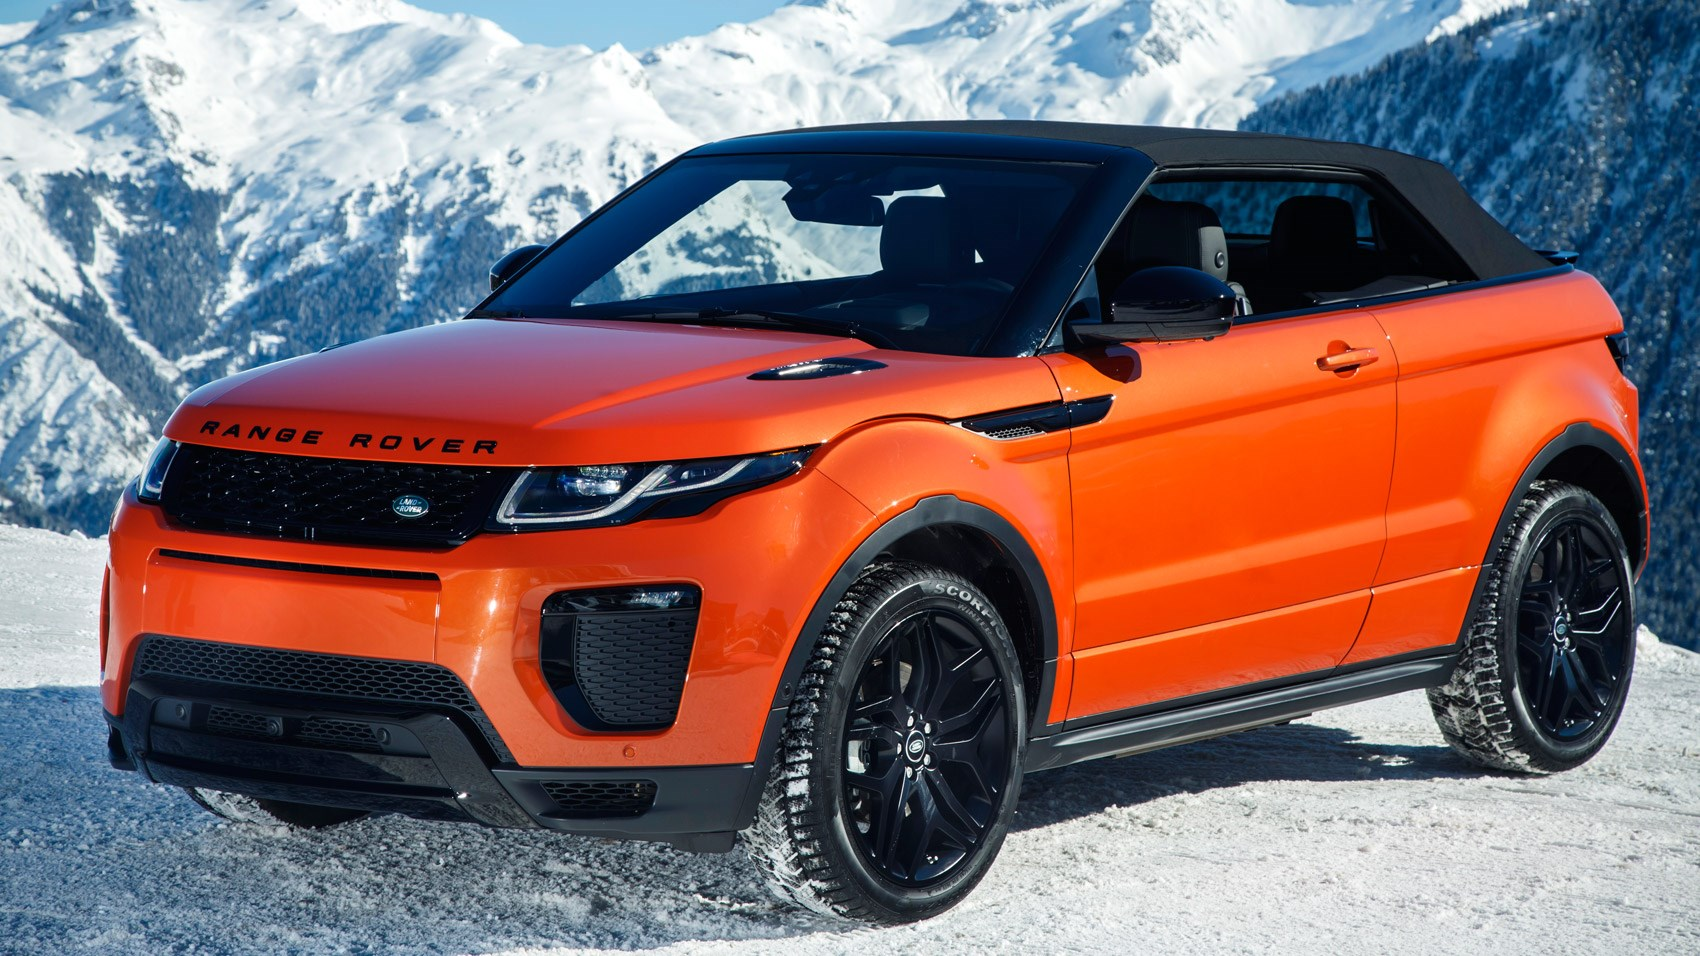 Range Rover Evoque Convertible 2 0d Hse Dynamic Lux 2016 Review